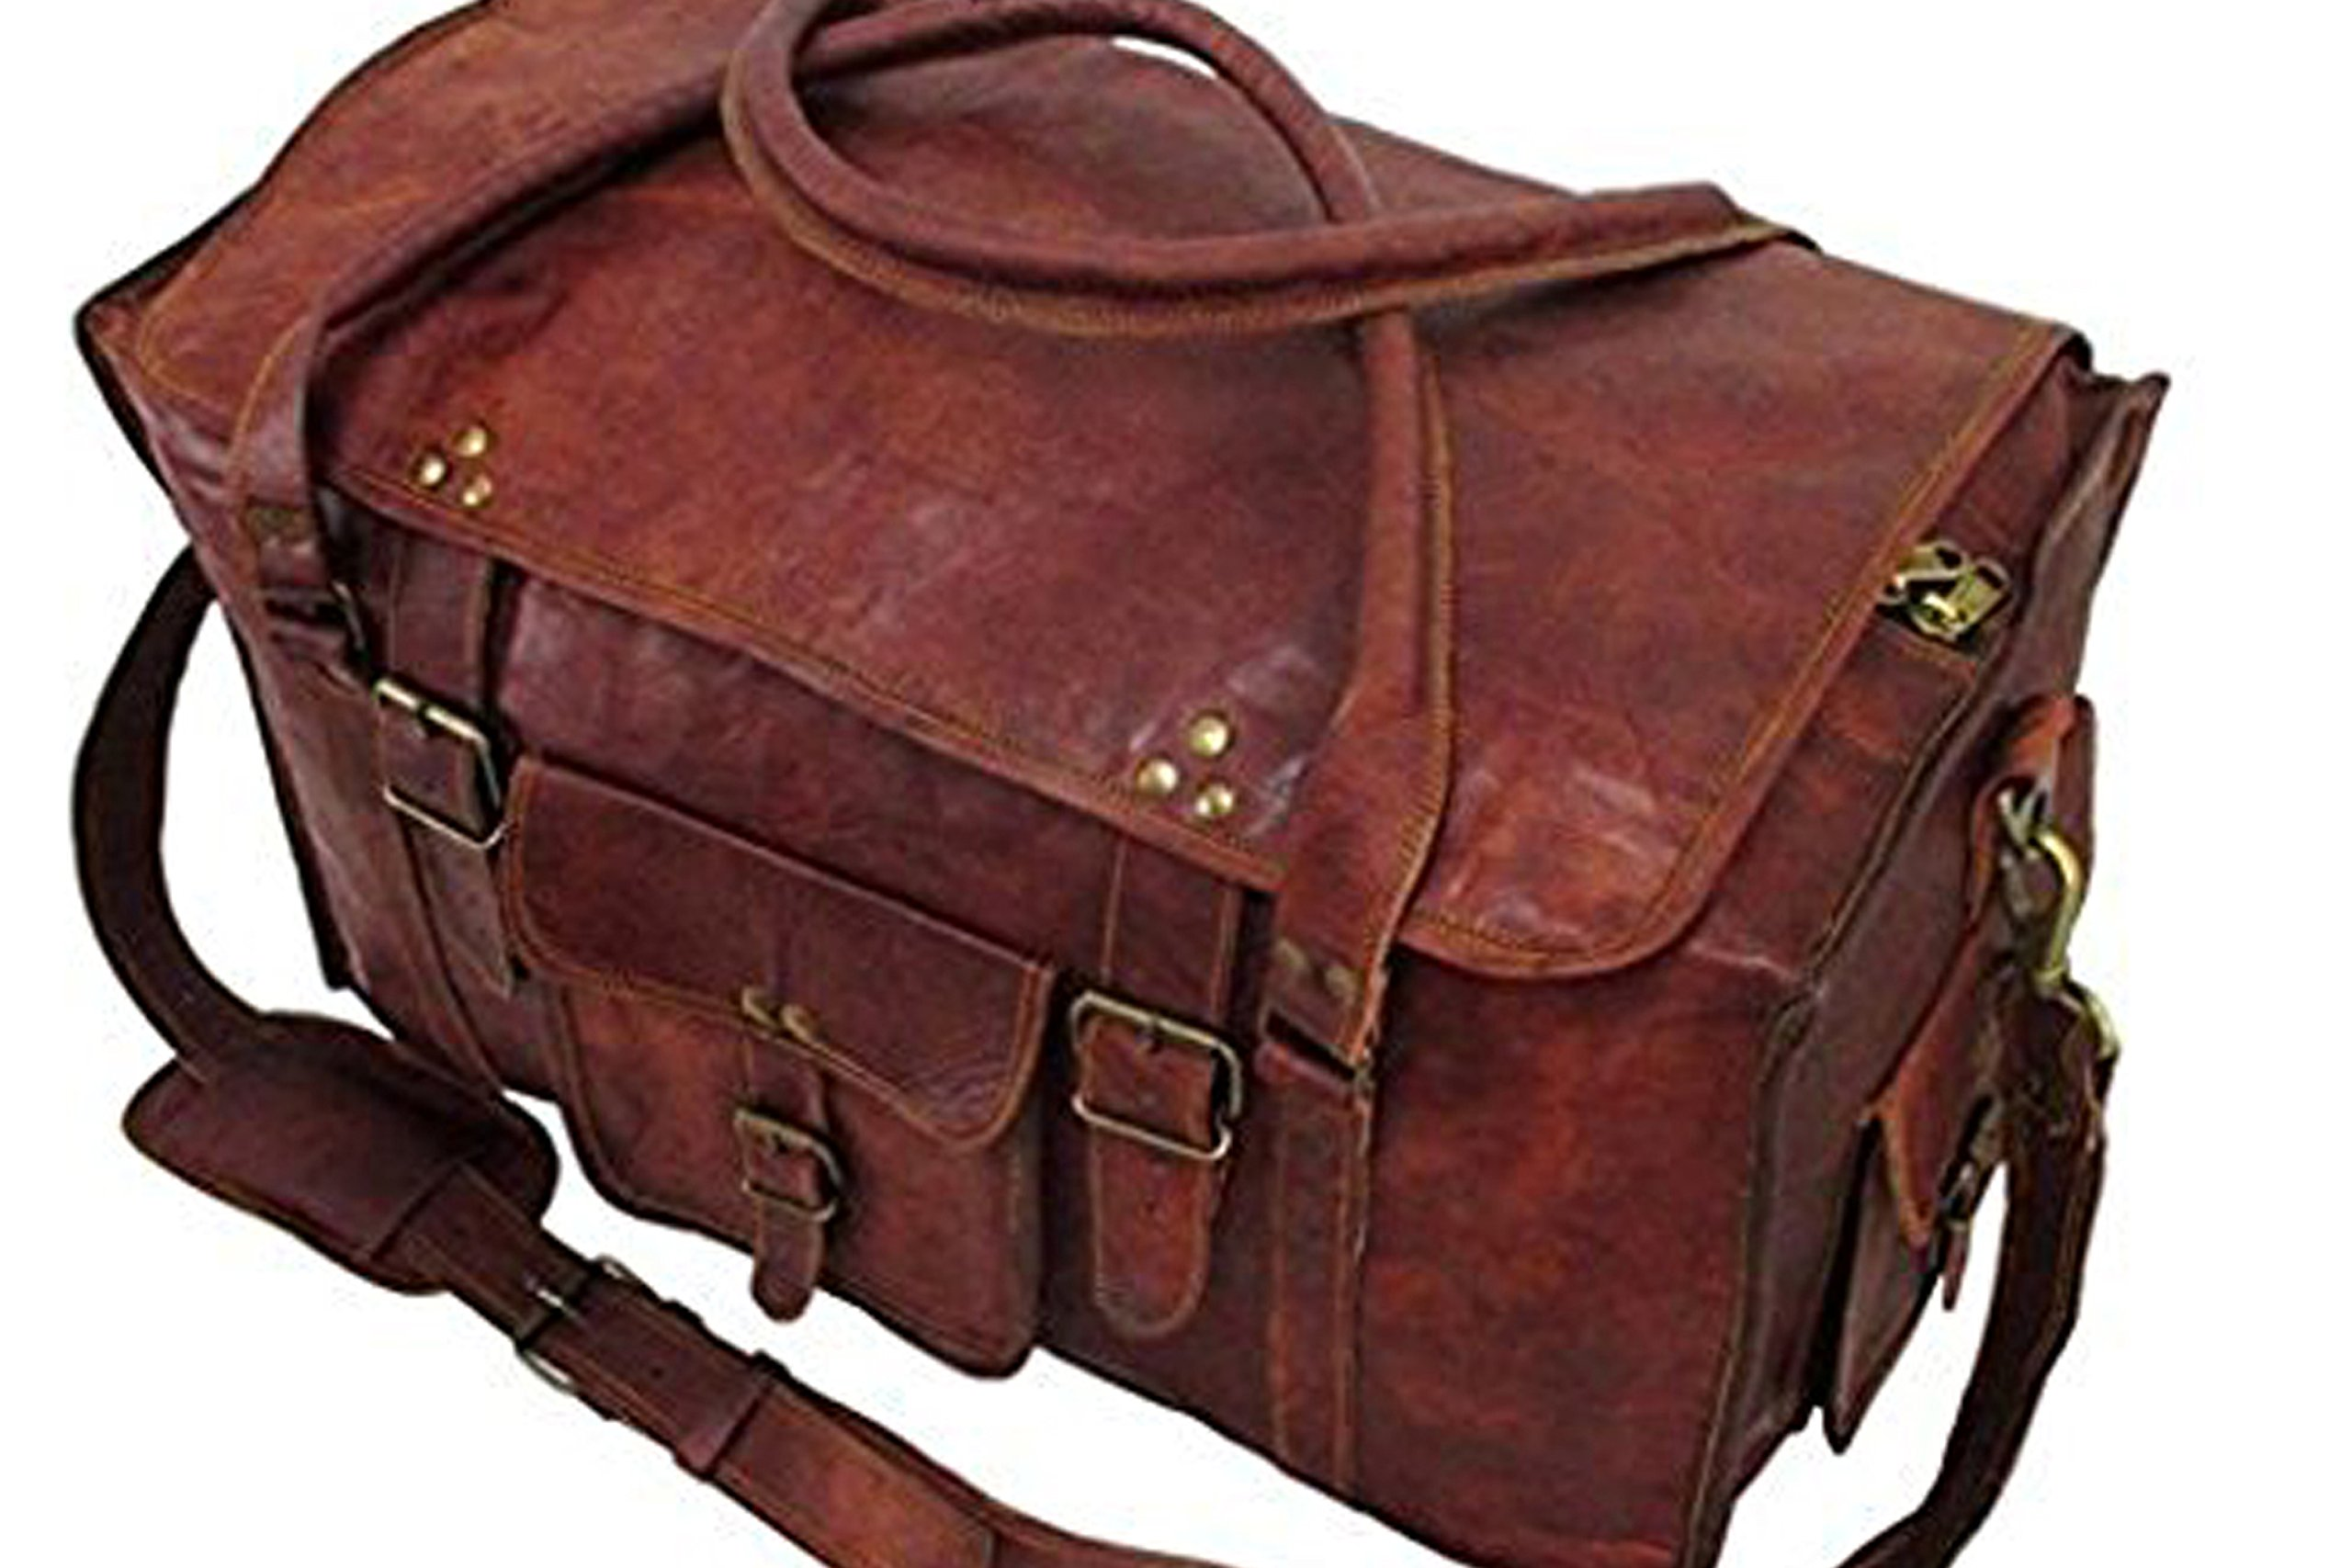 Silkroute craft 21'' Men & Women Retro Style Carry on Luggage Flap Duffel Leather Bag